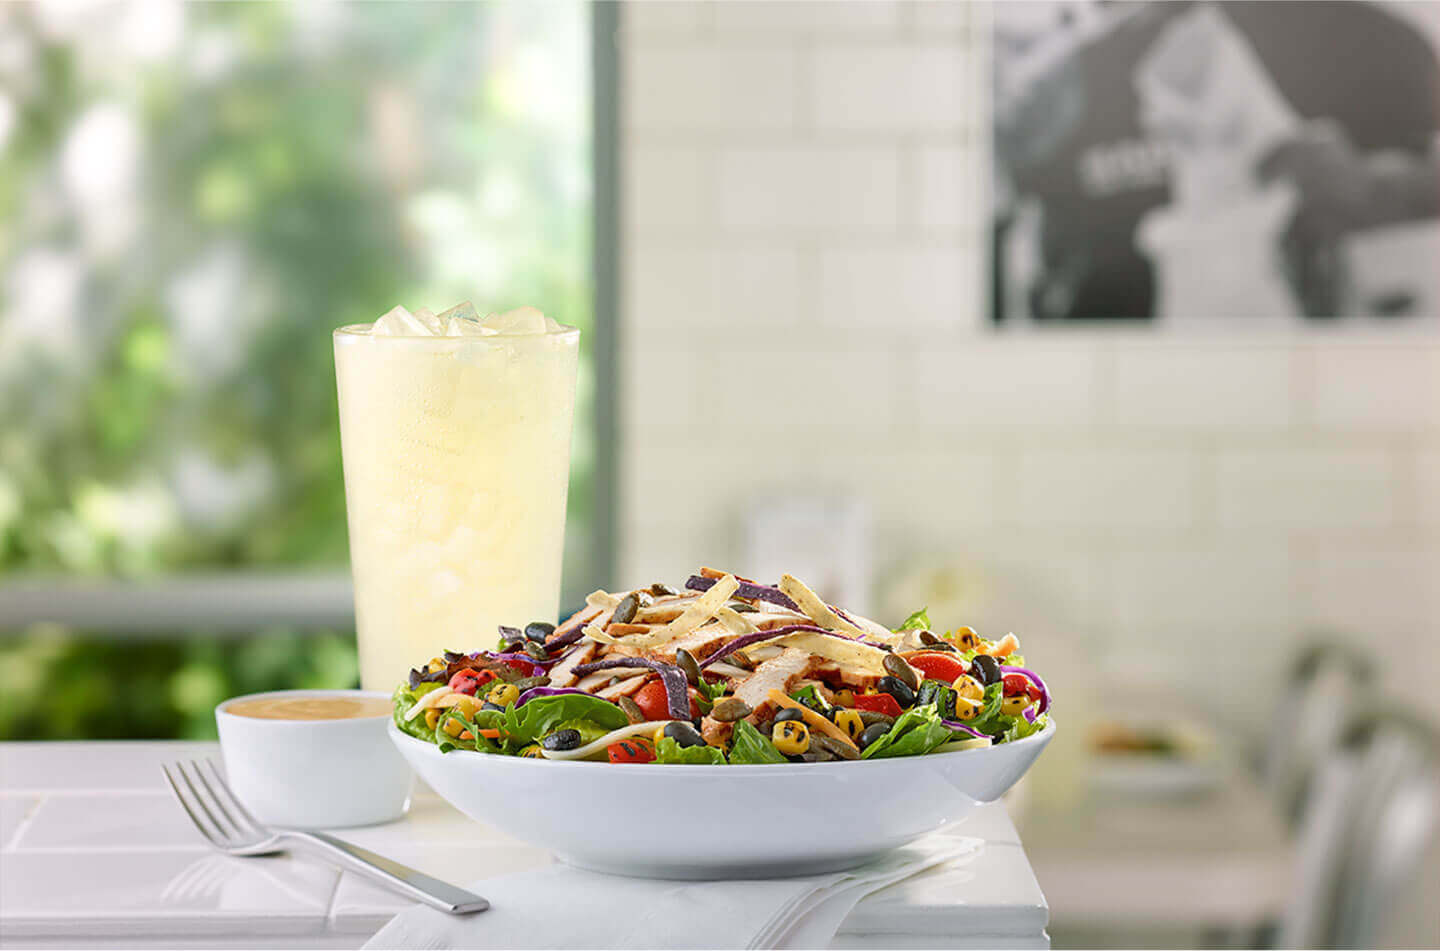 Spicy southwest chicken salad and a glass of lemonade